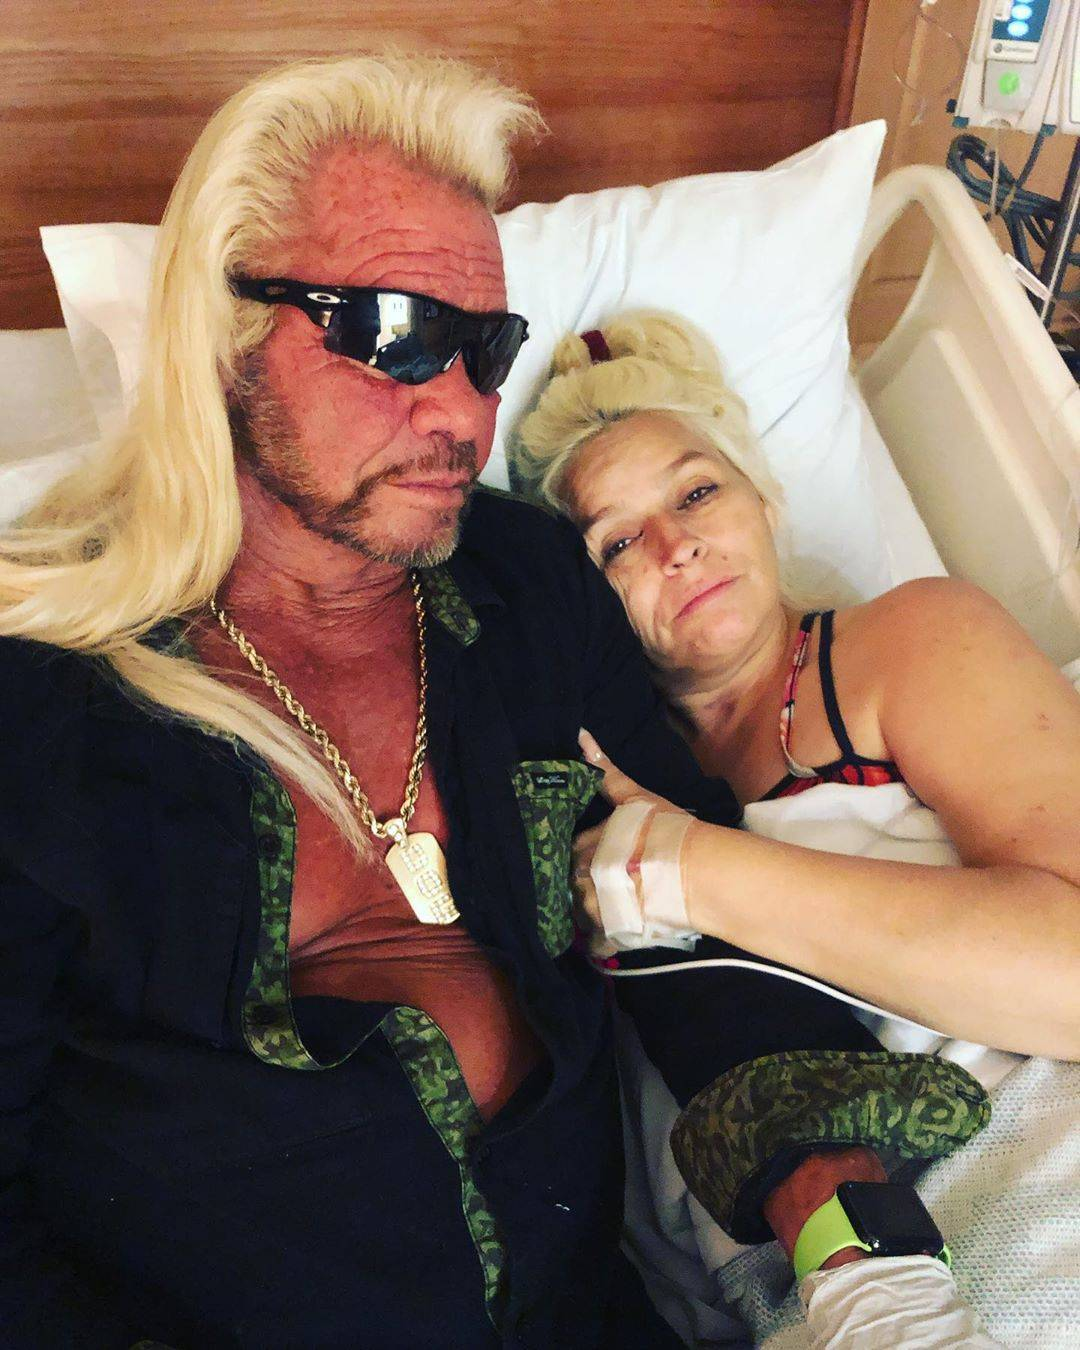 Duane Chapman lying next to Beth in a hospital bed